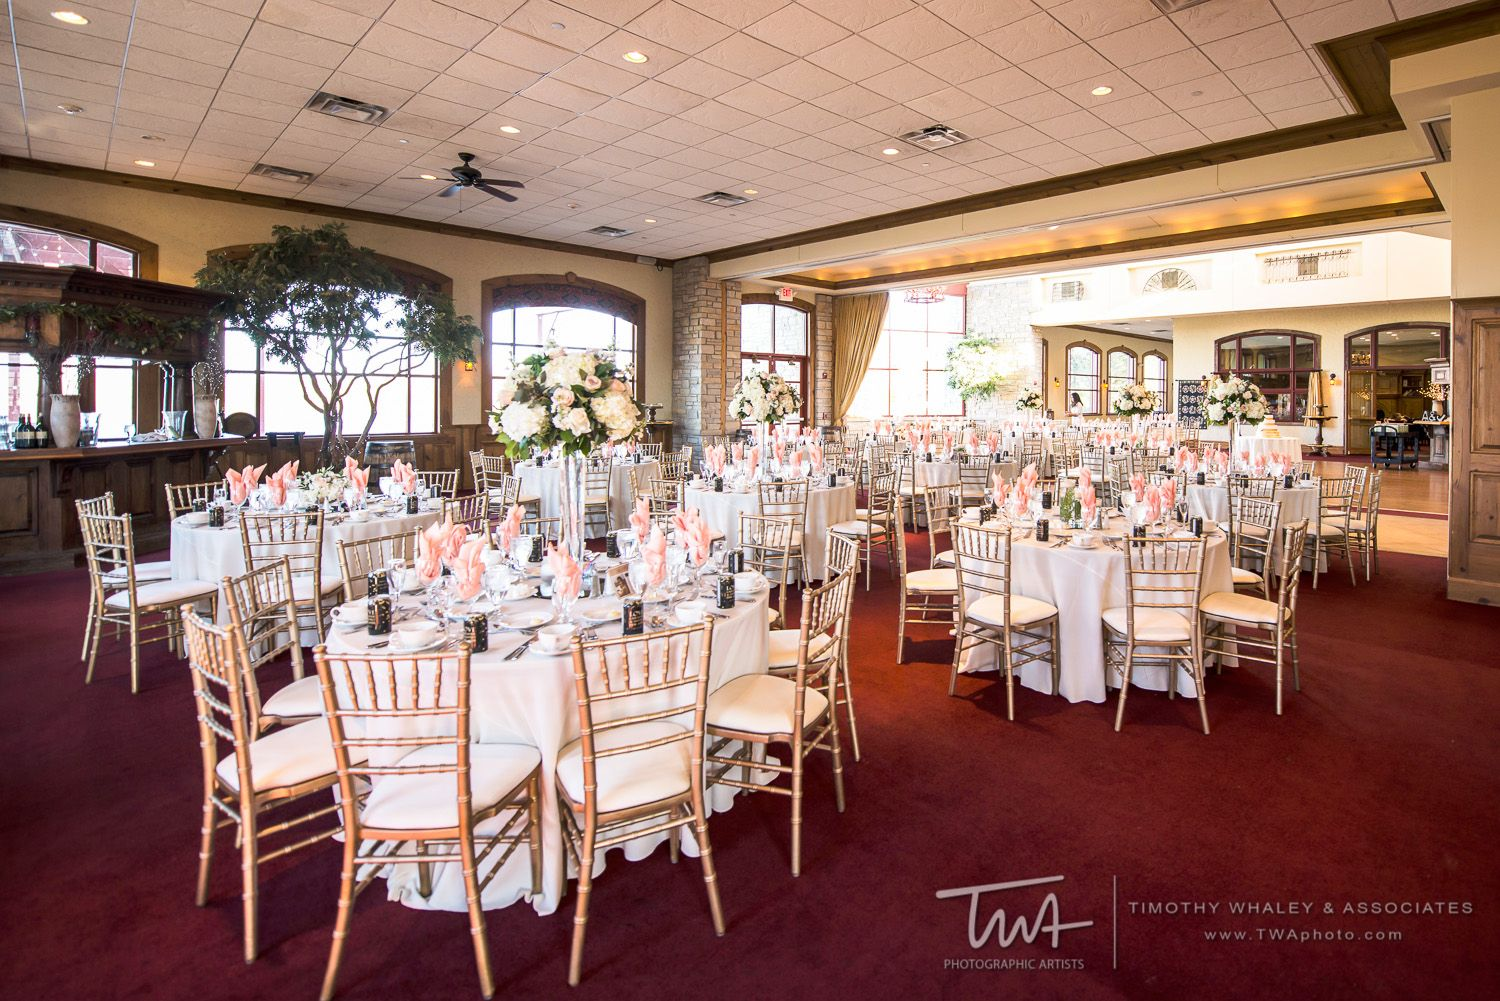 Twa Weddings At The Onion Pub And Brewery Click The Picture To